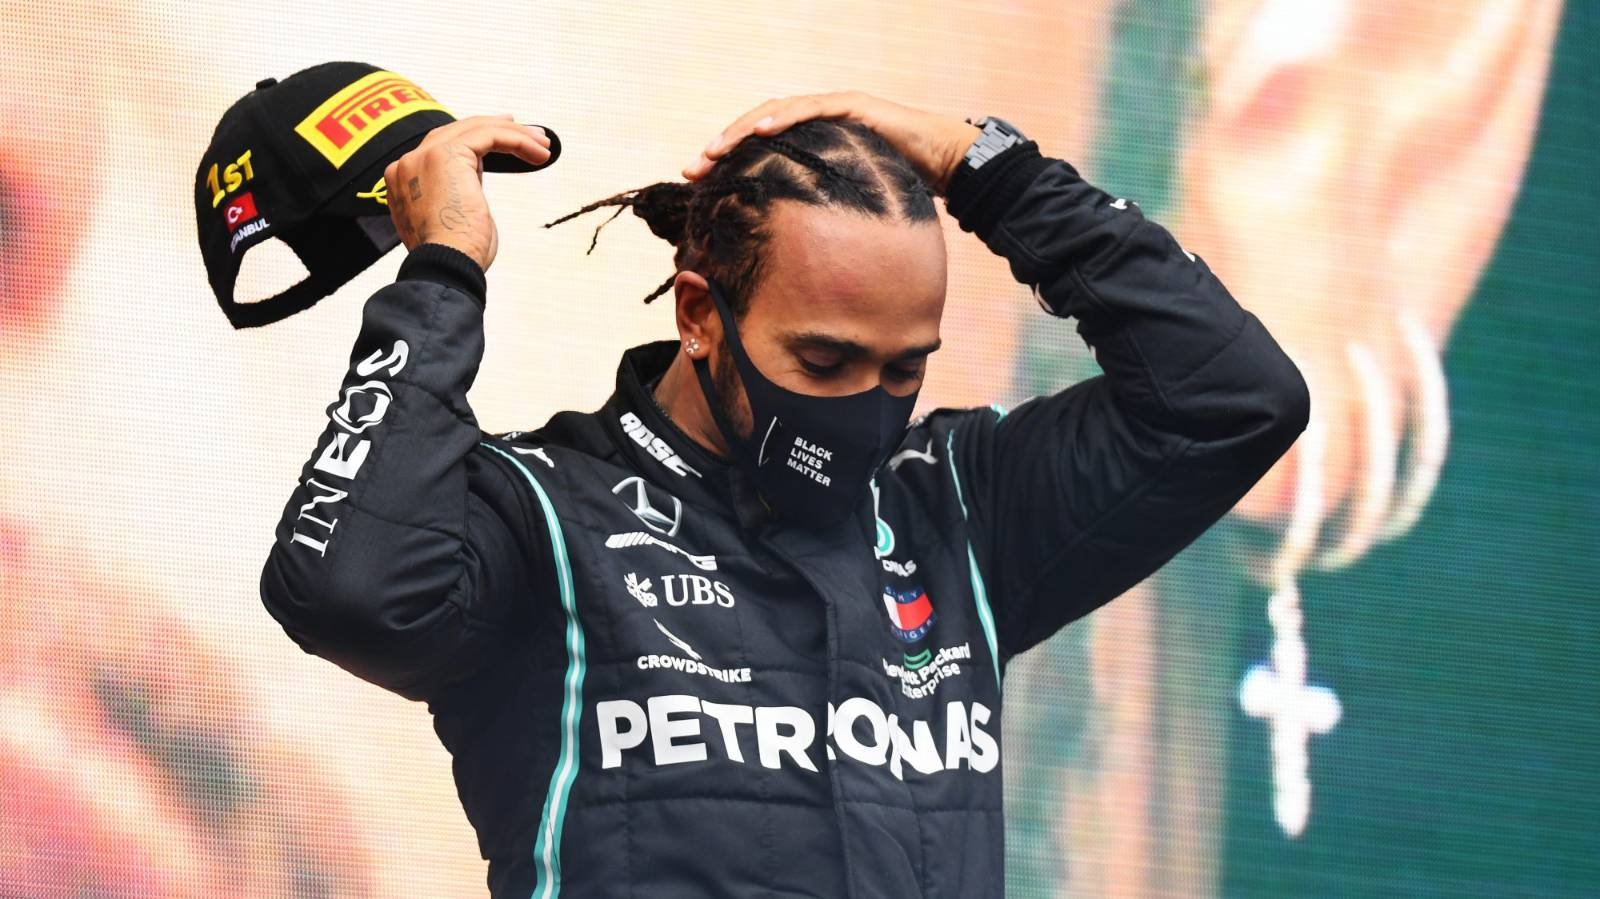 Lewis Hamilton tests positive for Covid-19, will miss Sakhir Grand Prix